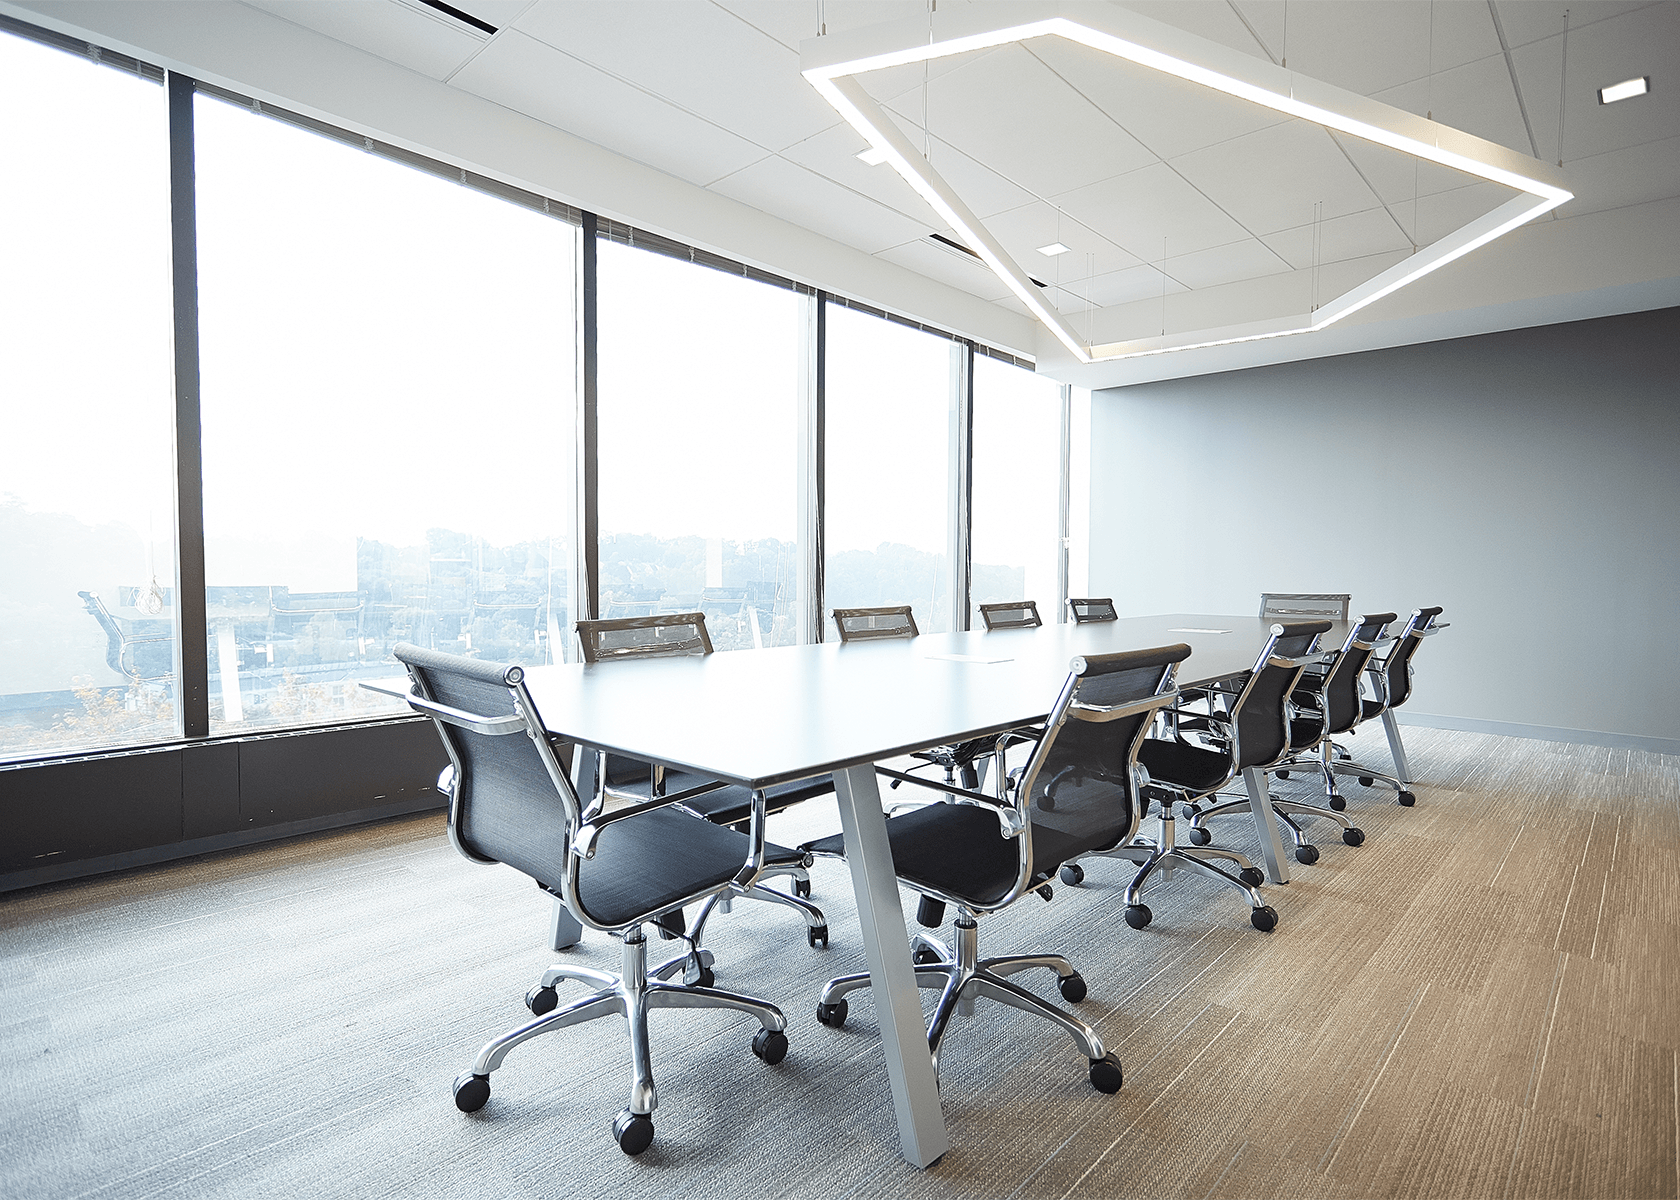 Conference room with modern table and chairs, a geometric light fixture, and floor-to-ceiling windows